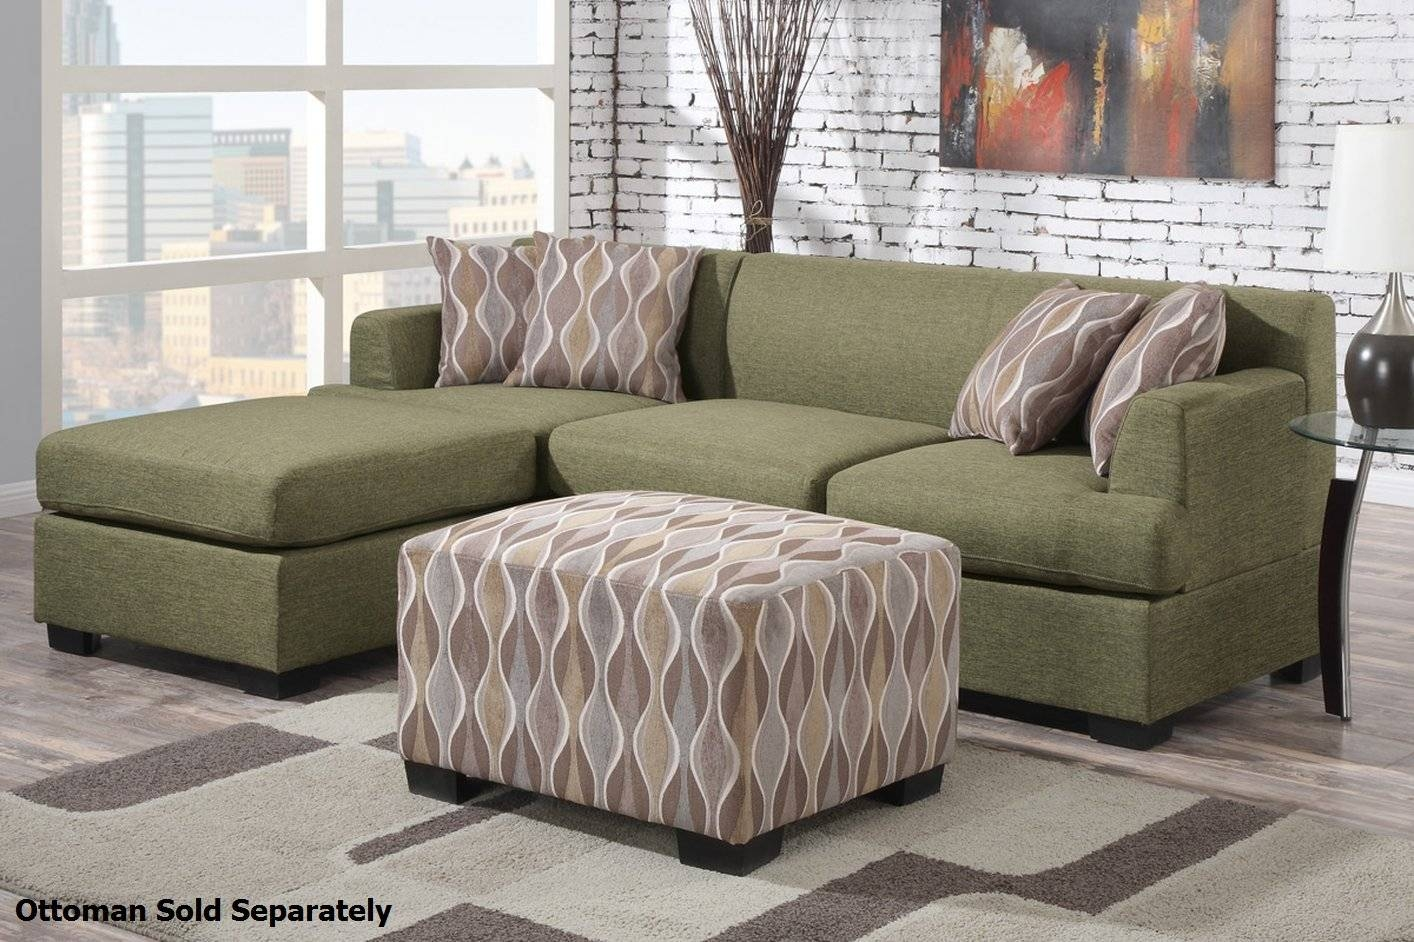 Green Sectional Sofa | Ira Design Regarding Olive Green Sectional Sofas (View 12 of 15)